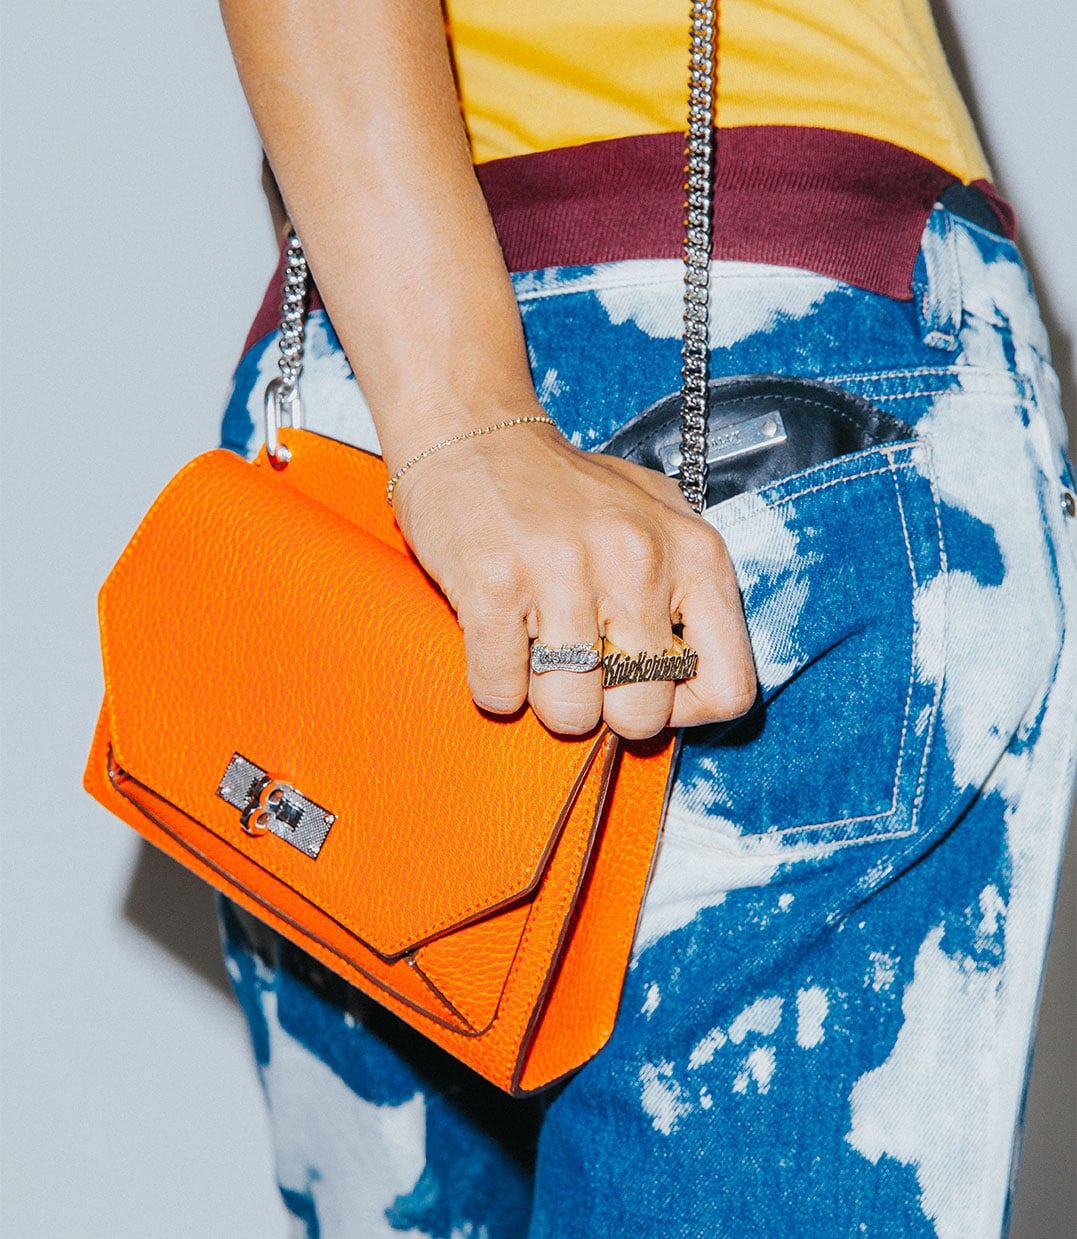 Vashtie and her Suzy bag